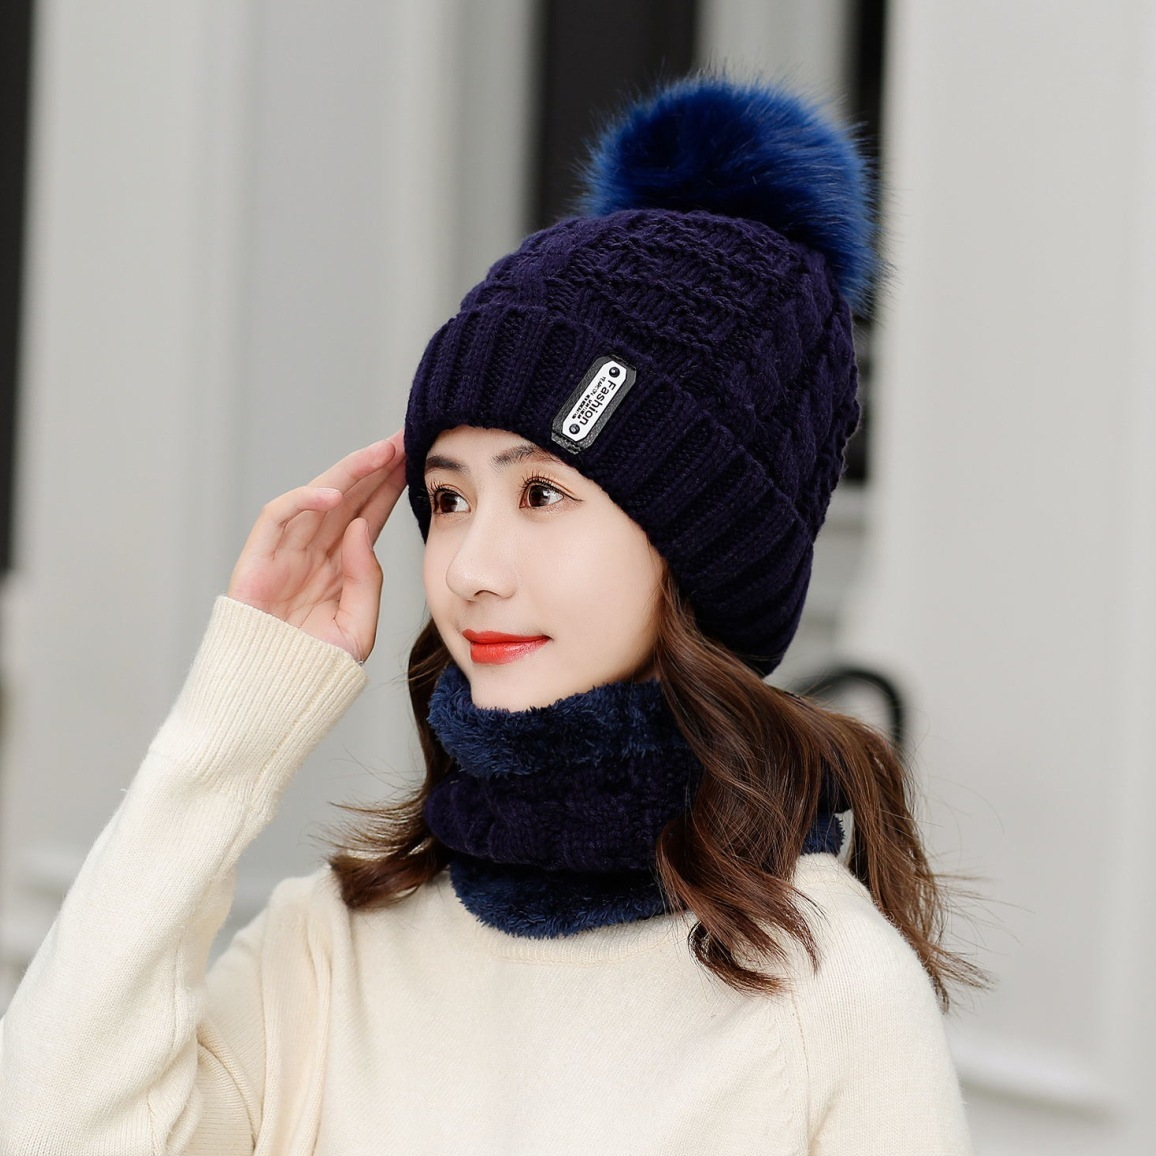 Women Winter Knitted Beanies Hats Women Thick Warm Beanie Skullies Hat Female Knit Letter Bonnet Beanie Caps Outdoor Riding Sets